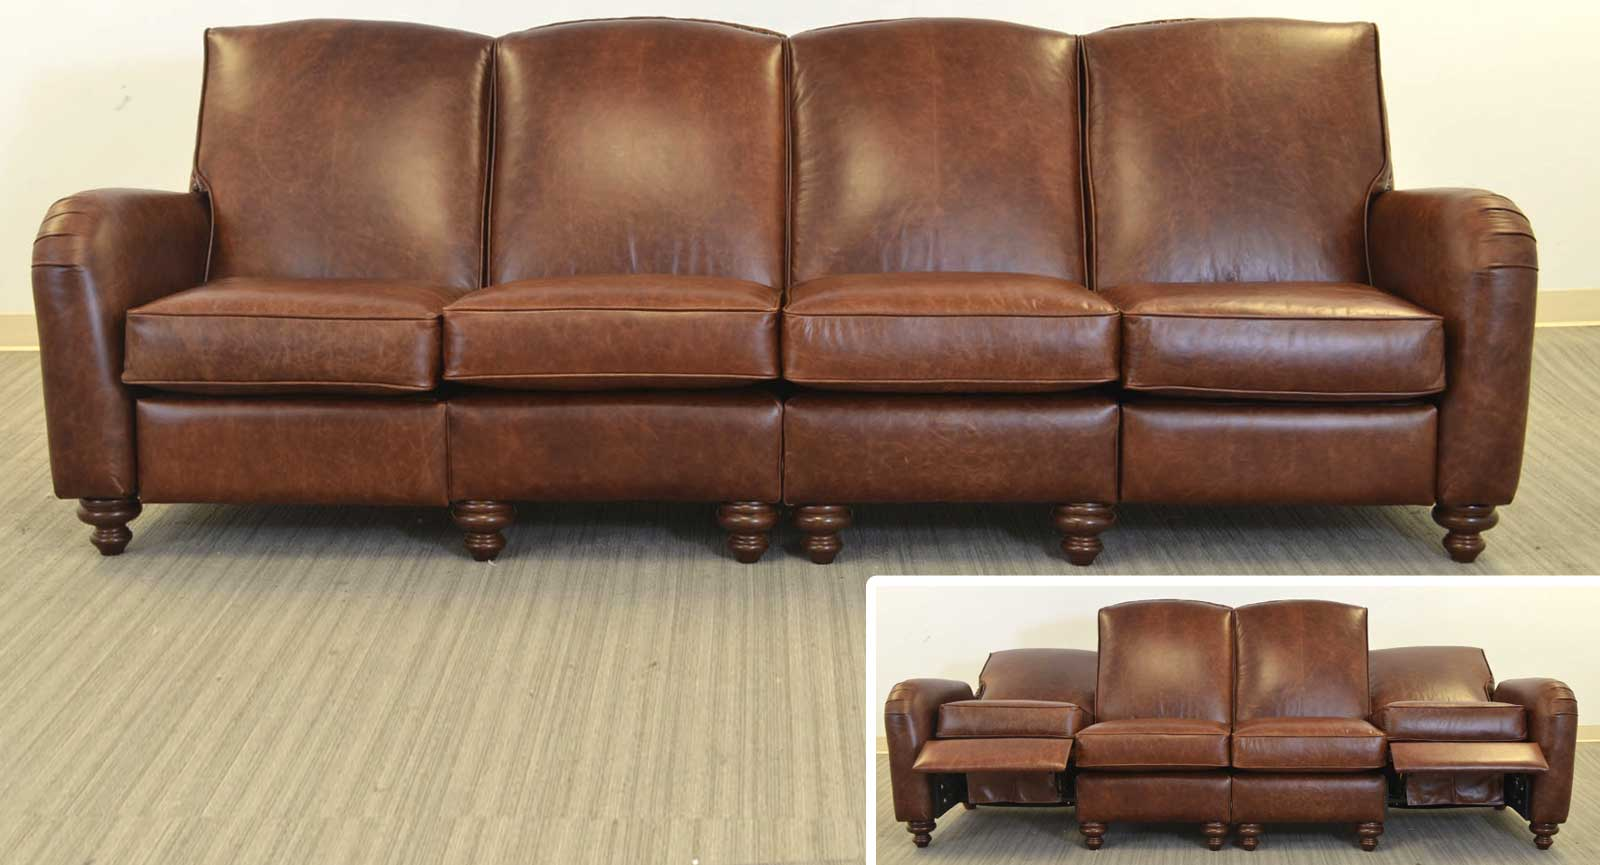 Four Seat Sofa With Incliners